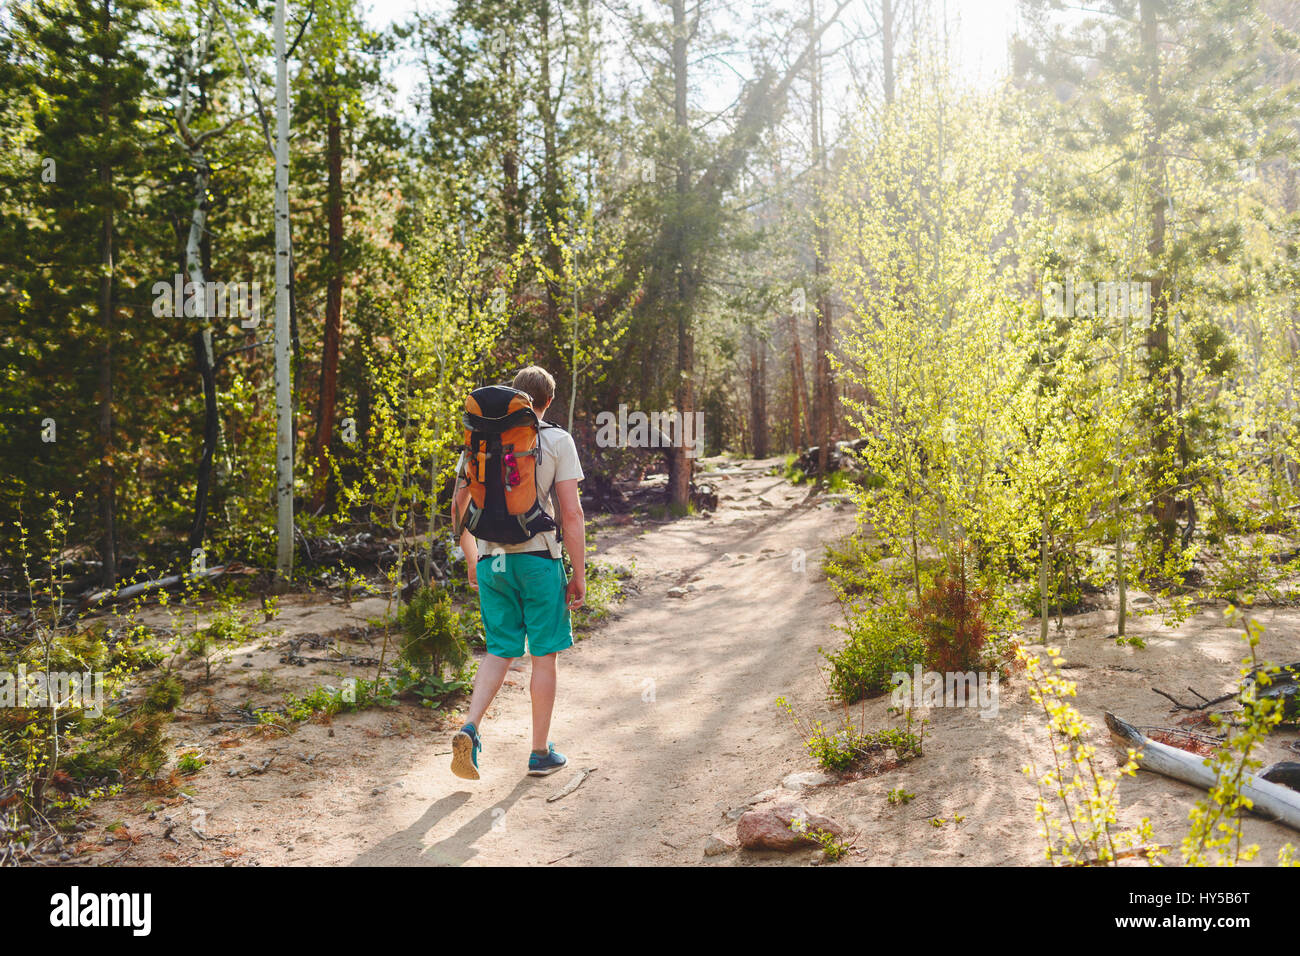 USA, Colorado, Rocky Mountain National Park, Young man hiking in forest - Stock Image